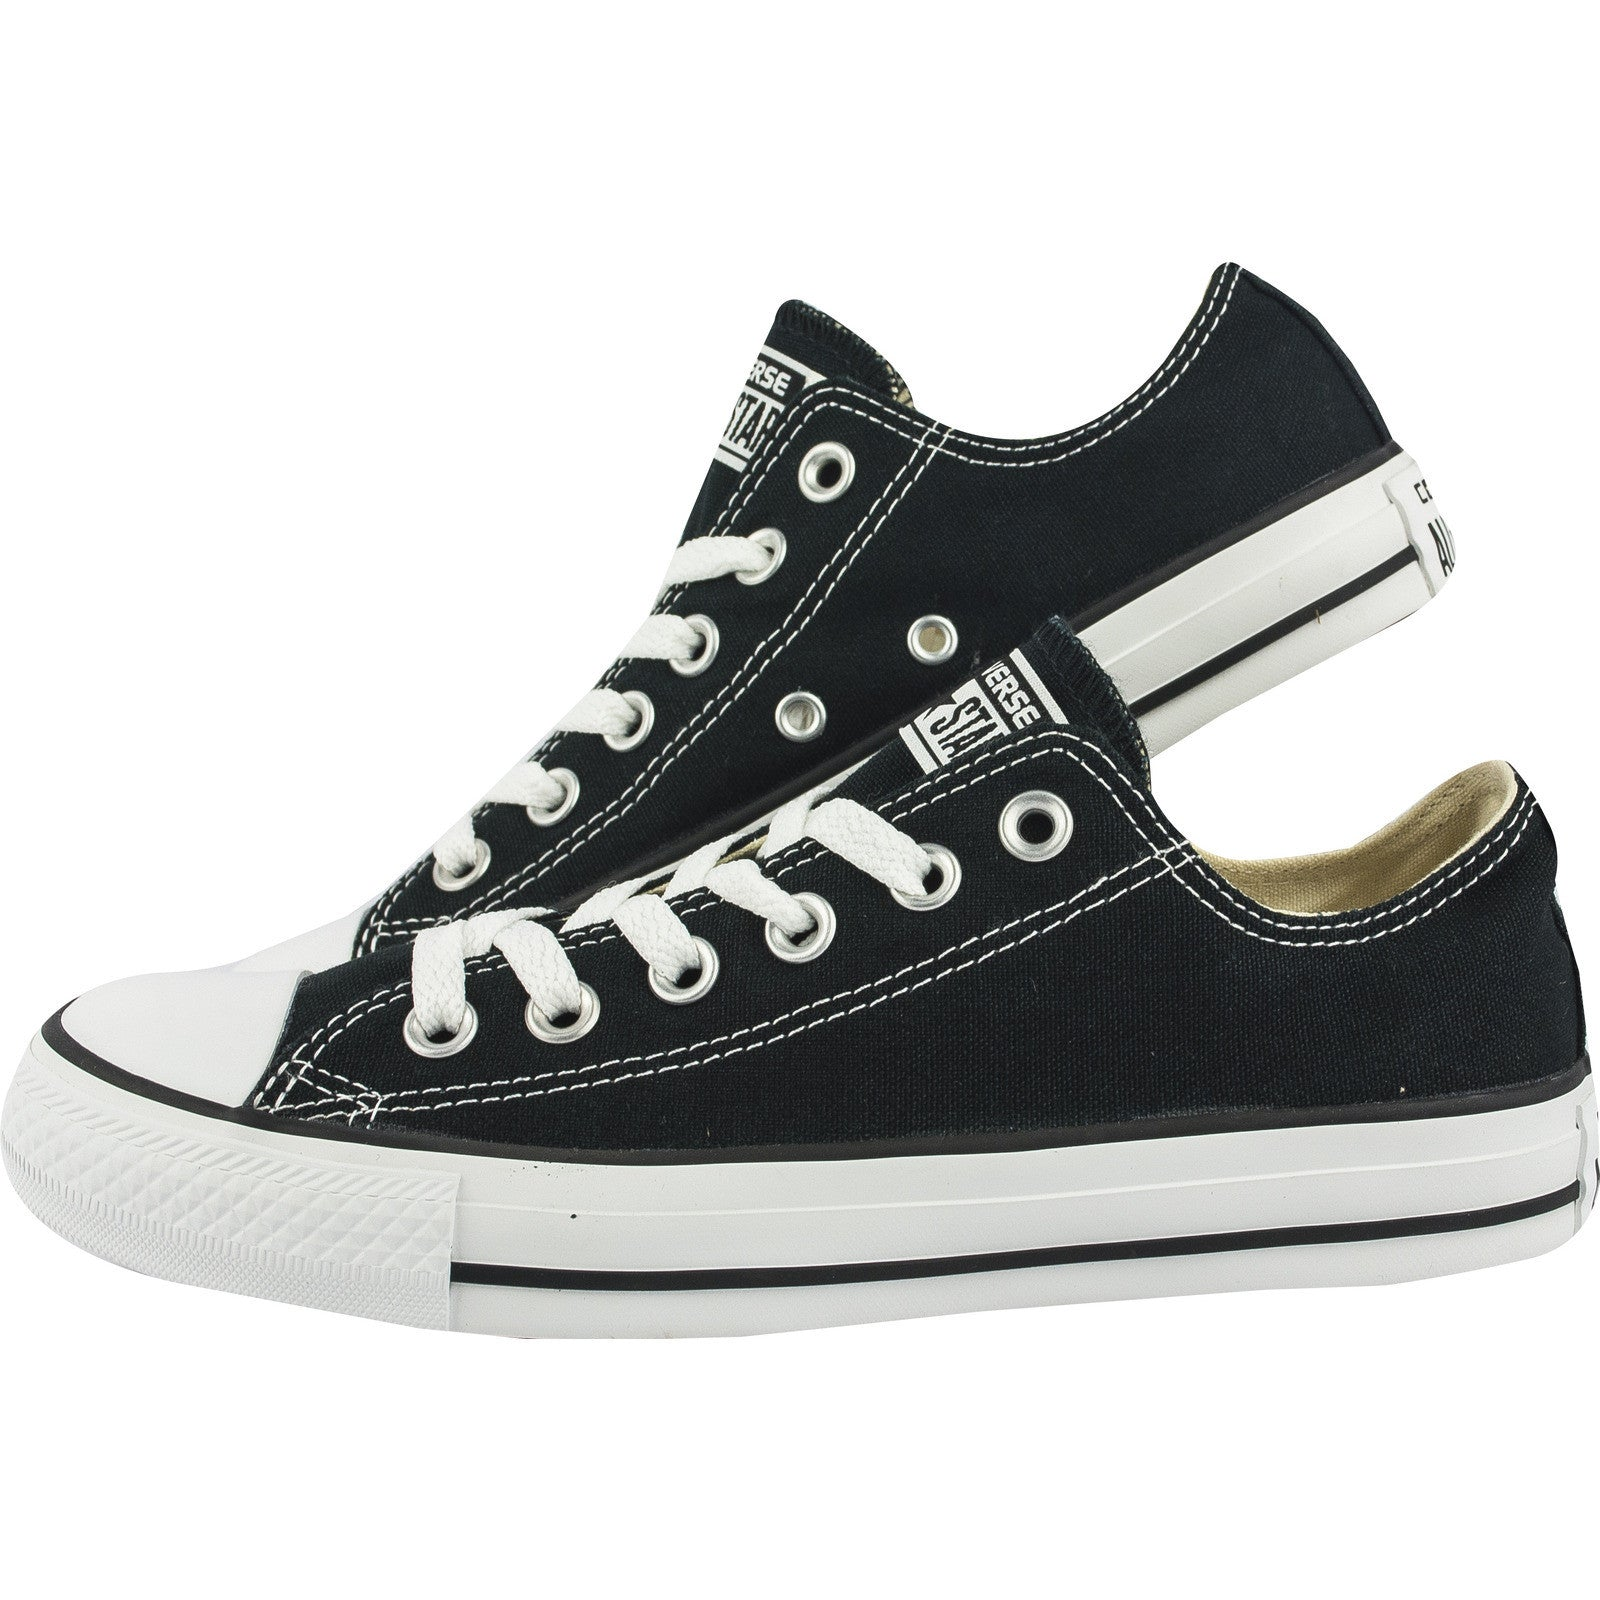 ... Converse Classic Chuck Taylor All Star Black Low Tops M9166C Sneaker  Men Women ...